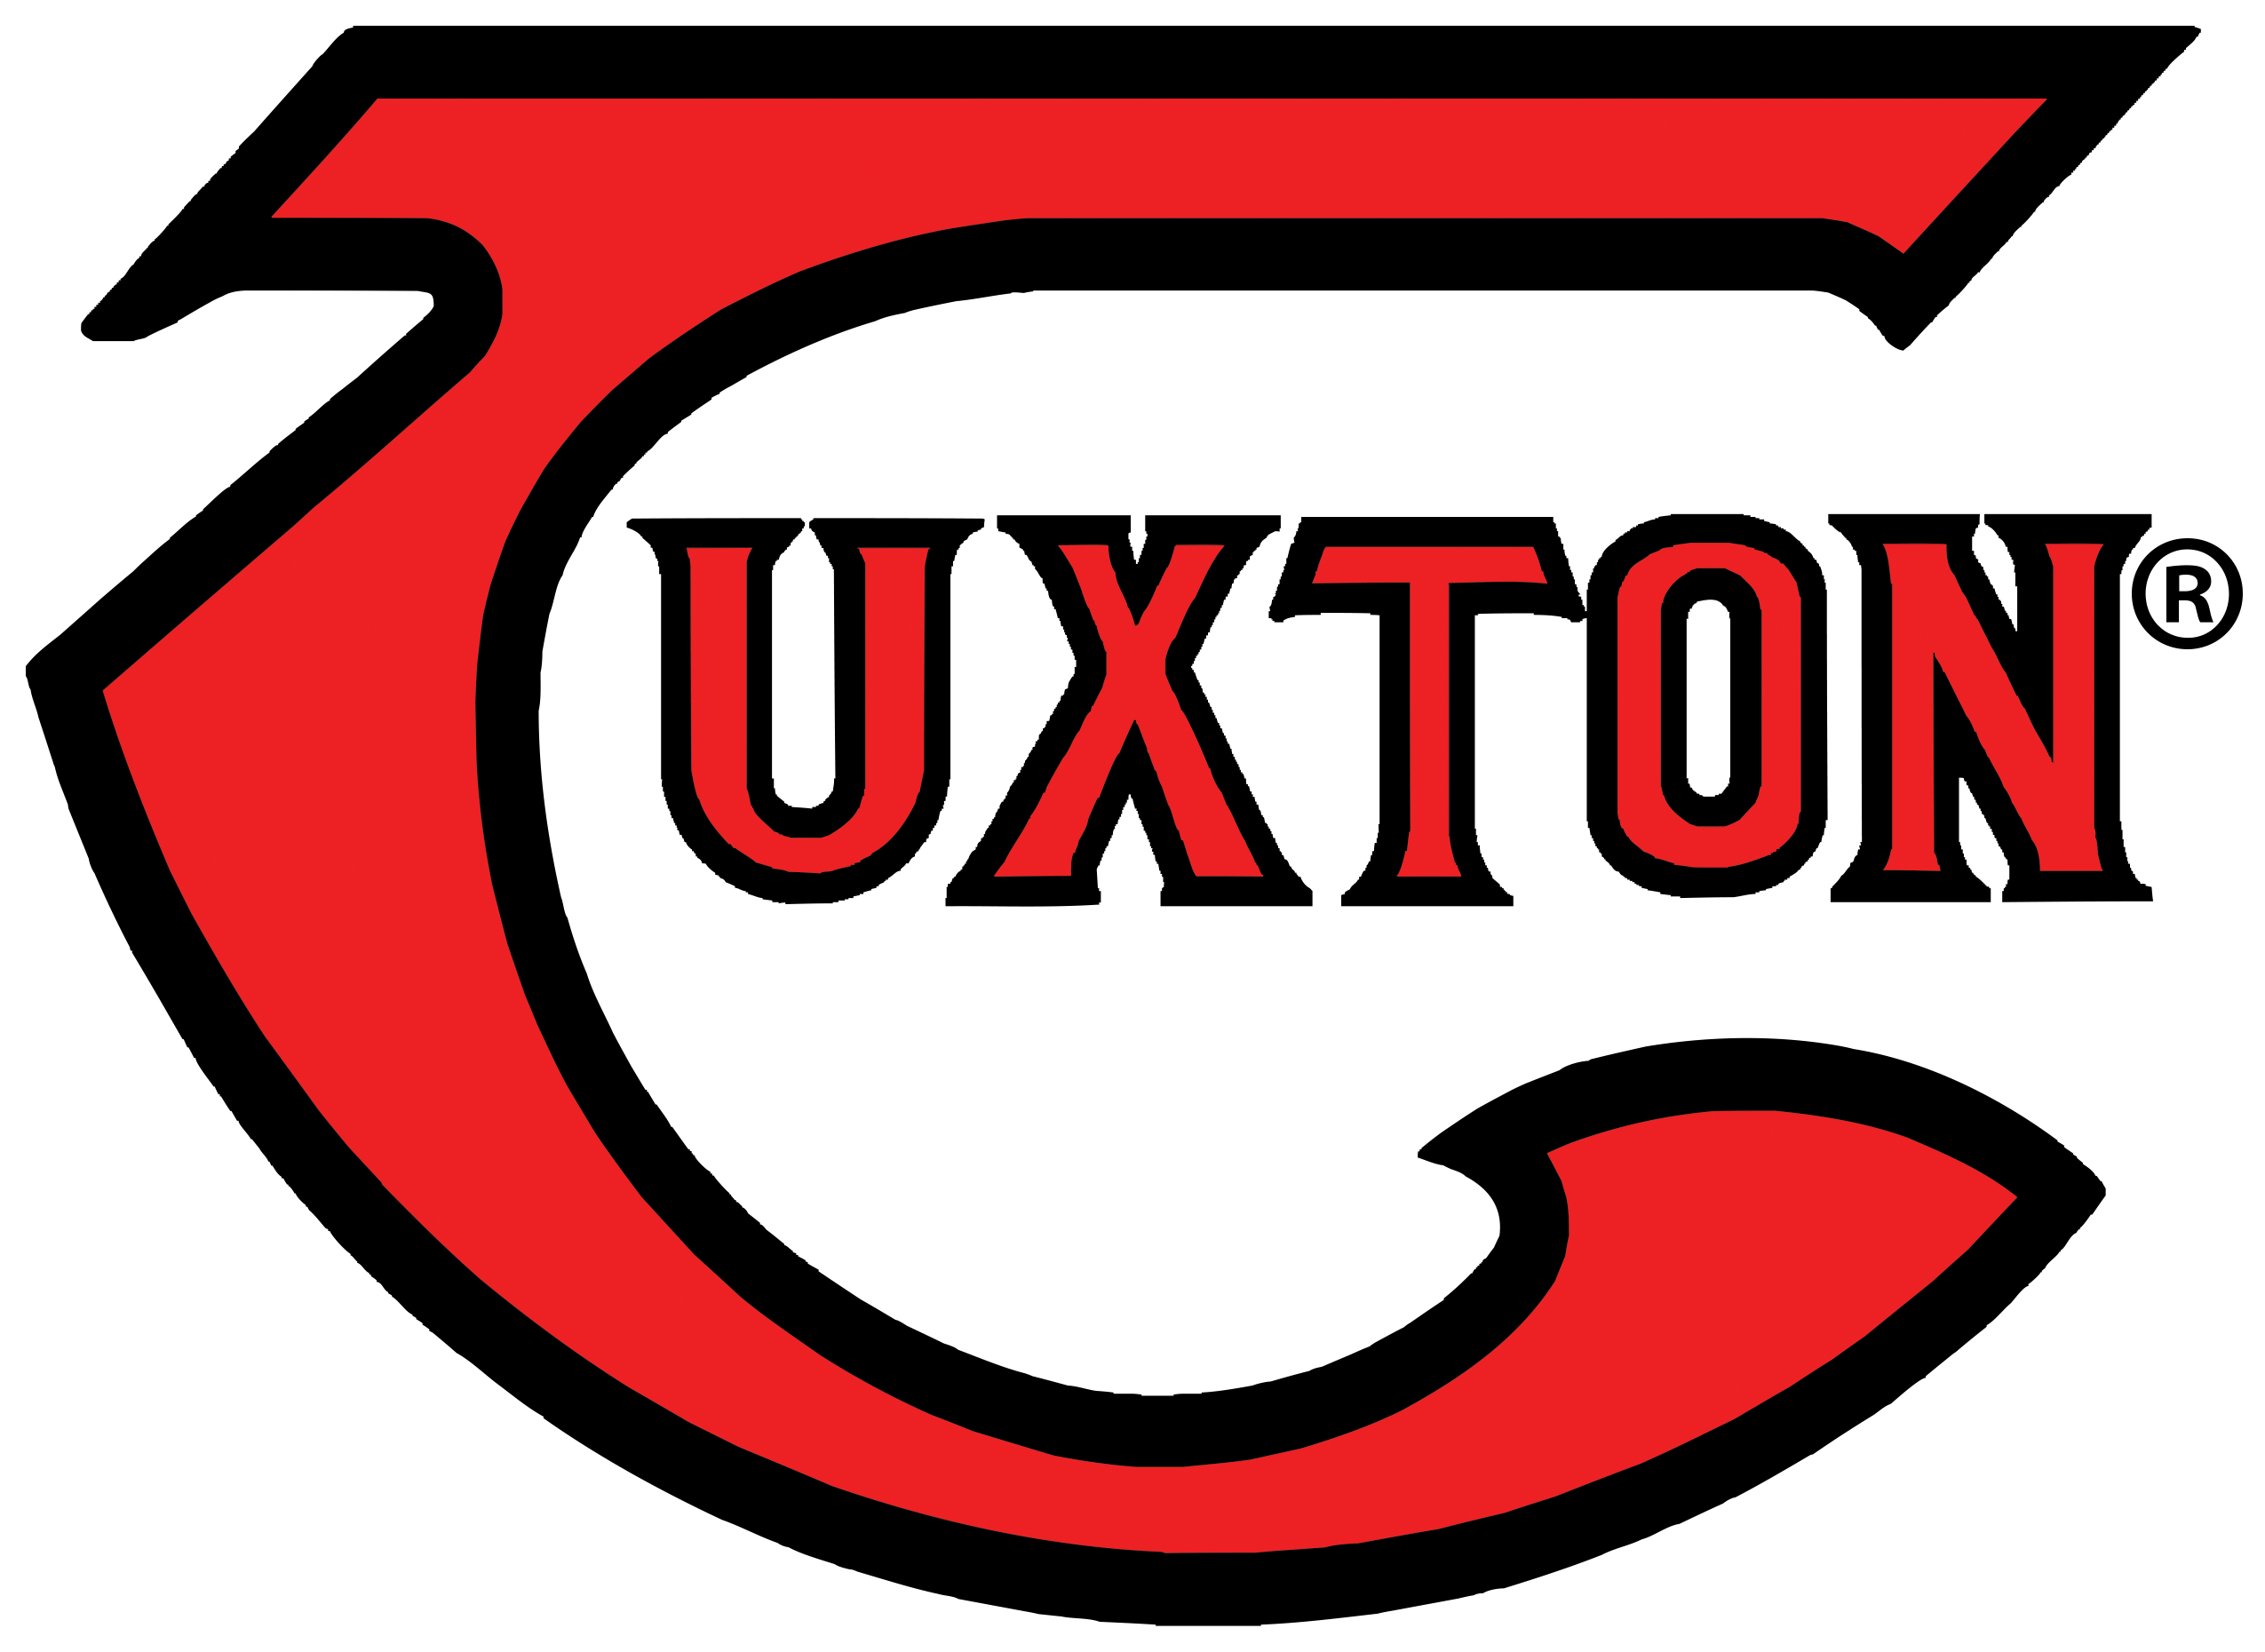 tuxton-logo-with-registered-mark-and-transparent-background